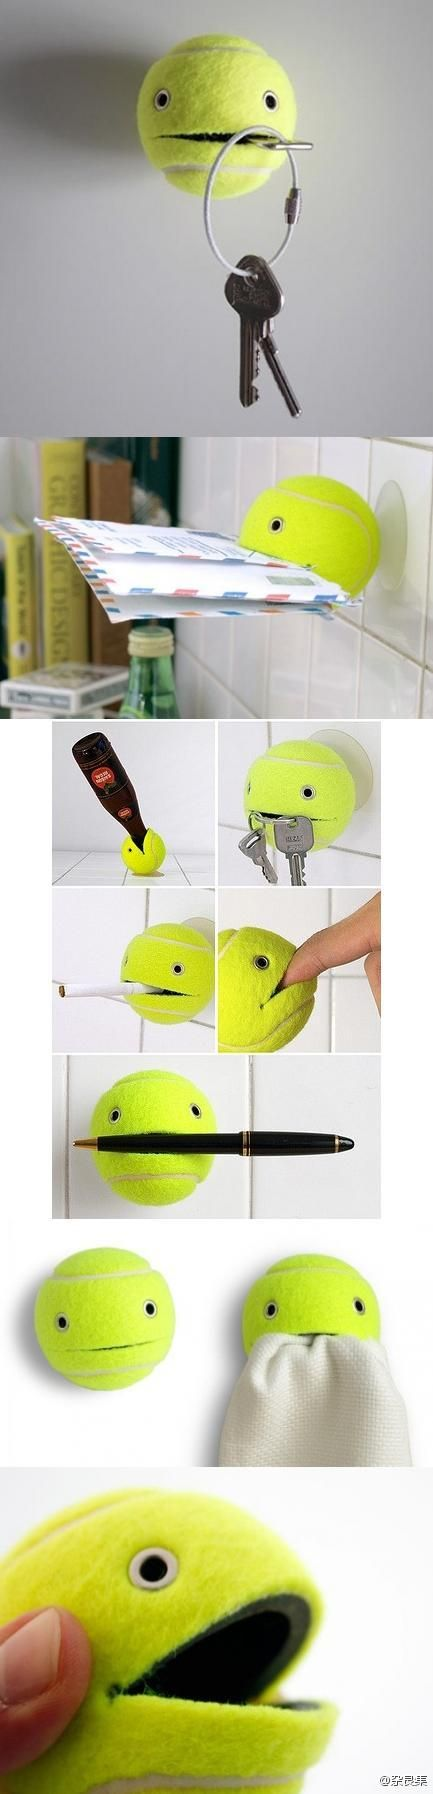 DIY :: A Chinese blogger has taken a tennis ball, simply cut it open and added eyes to give it a little personality (almost like Pac-Man) and to make it useful around the house.